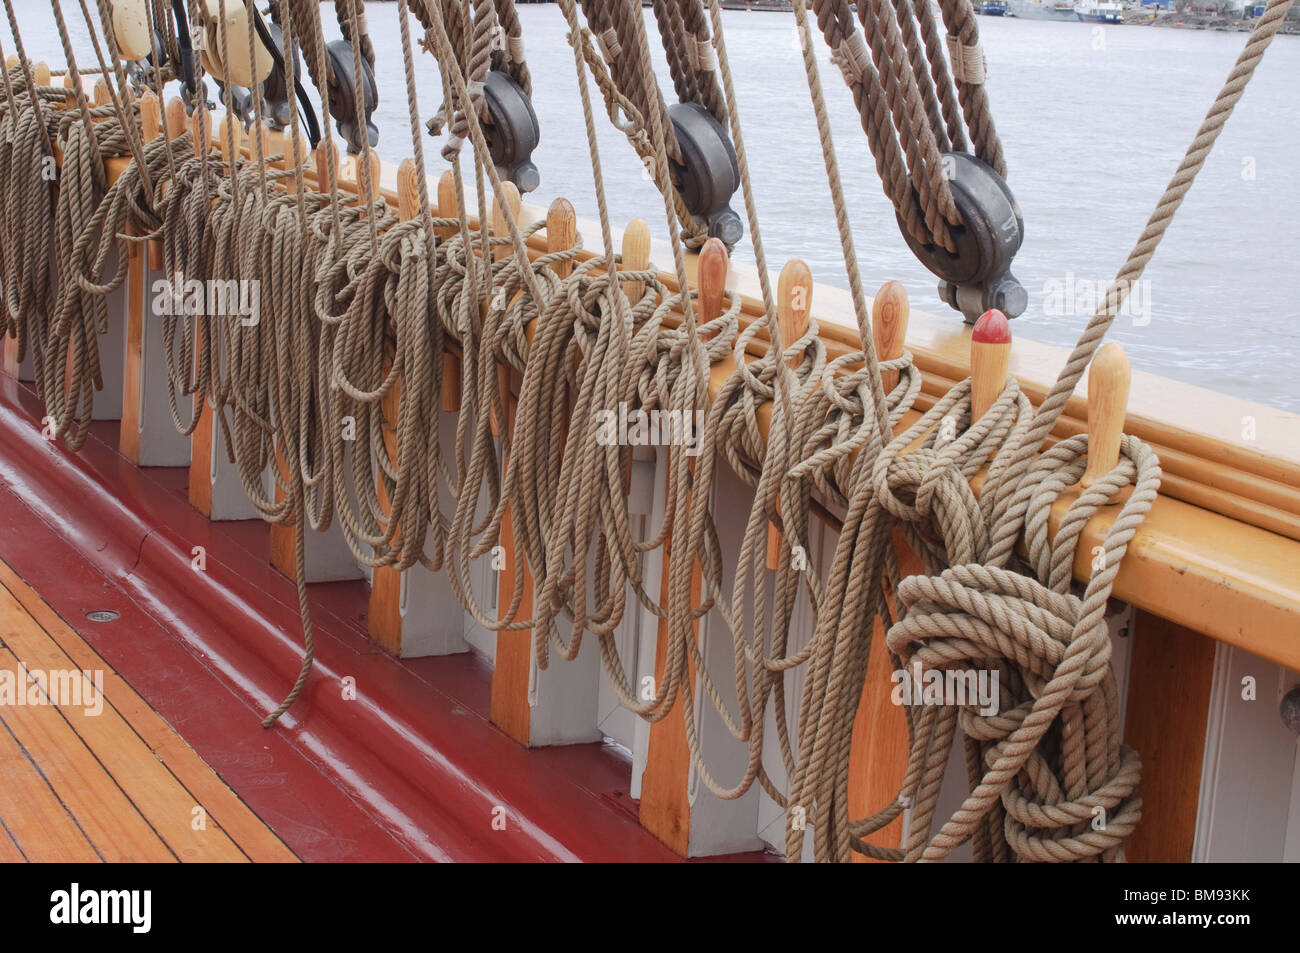 Sailing ship rigging, deck and railing - Stock Image